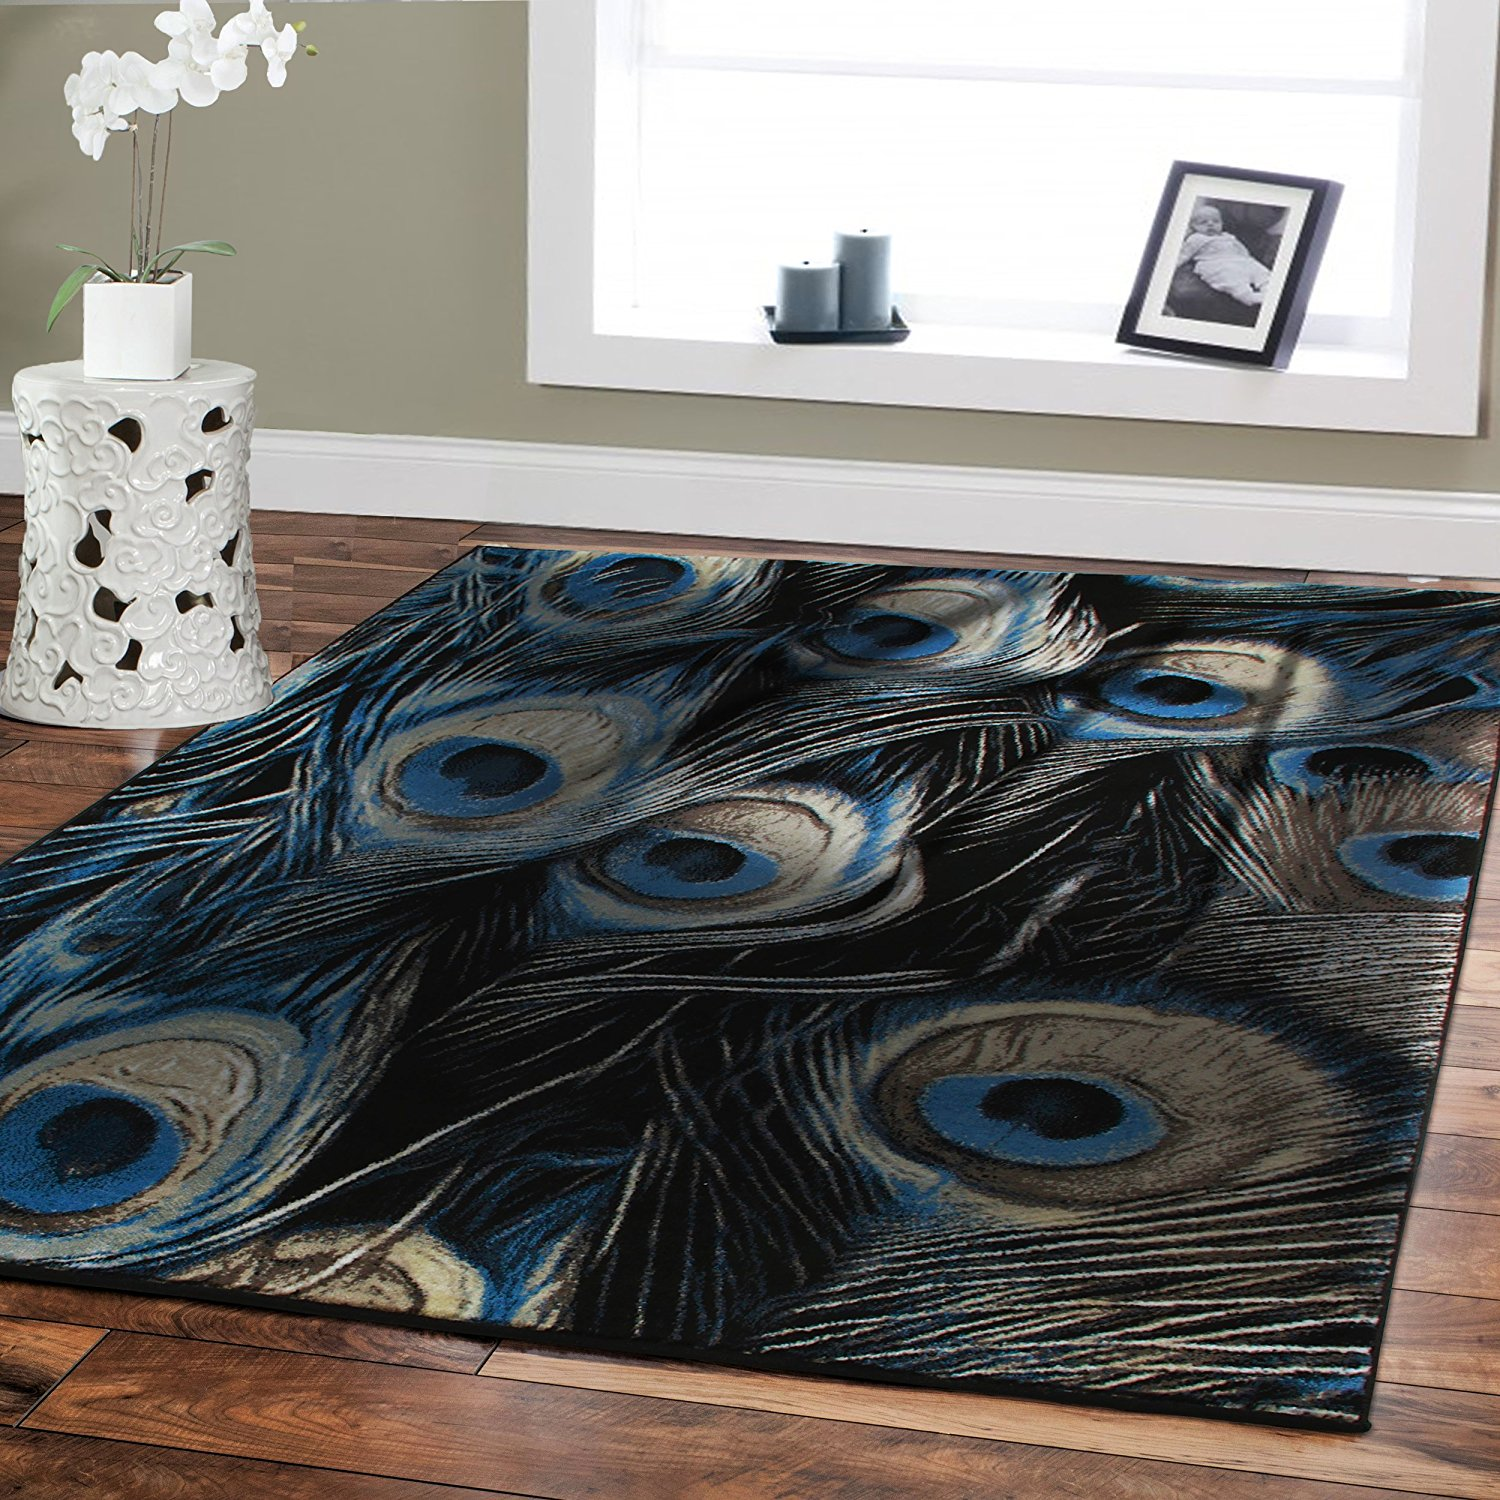 Premium Rugs Large High Quality Rugs for Living Room 5x8 Dining Room Rugs for Under the Table 5x7 Black Blue Peacock Rugs on Clearance